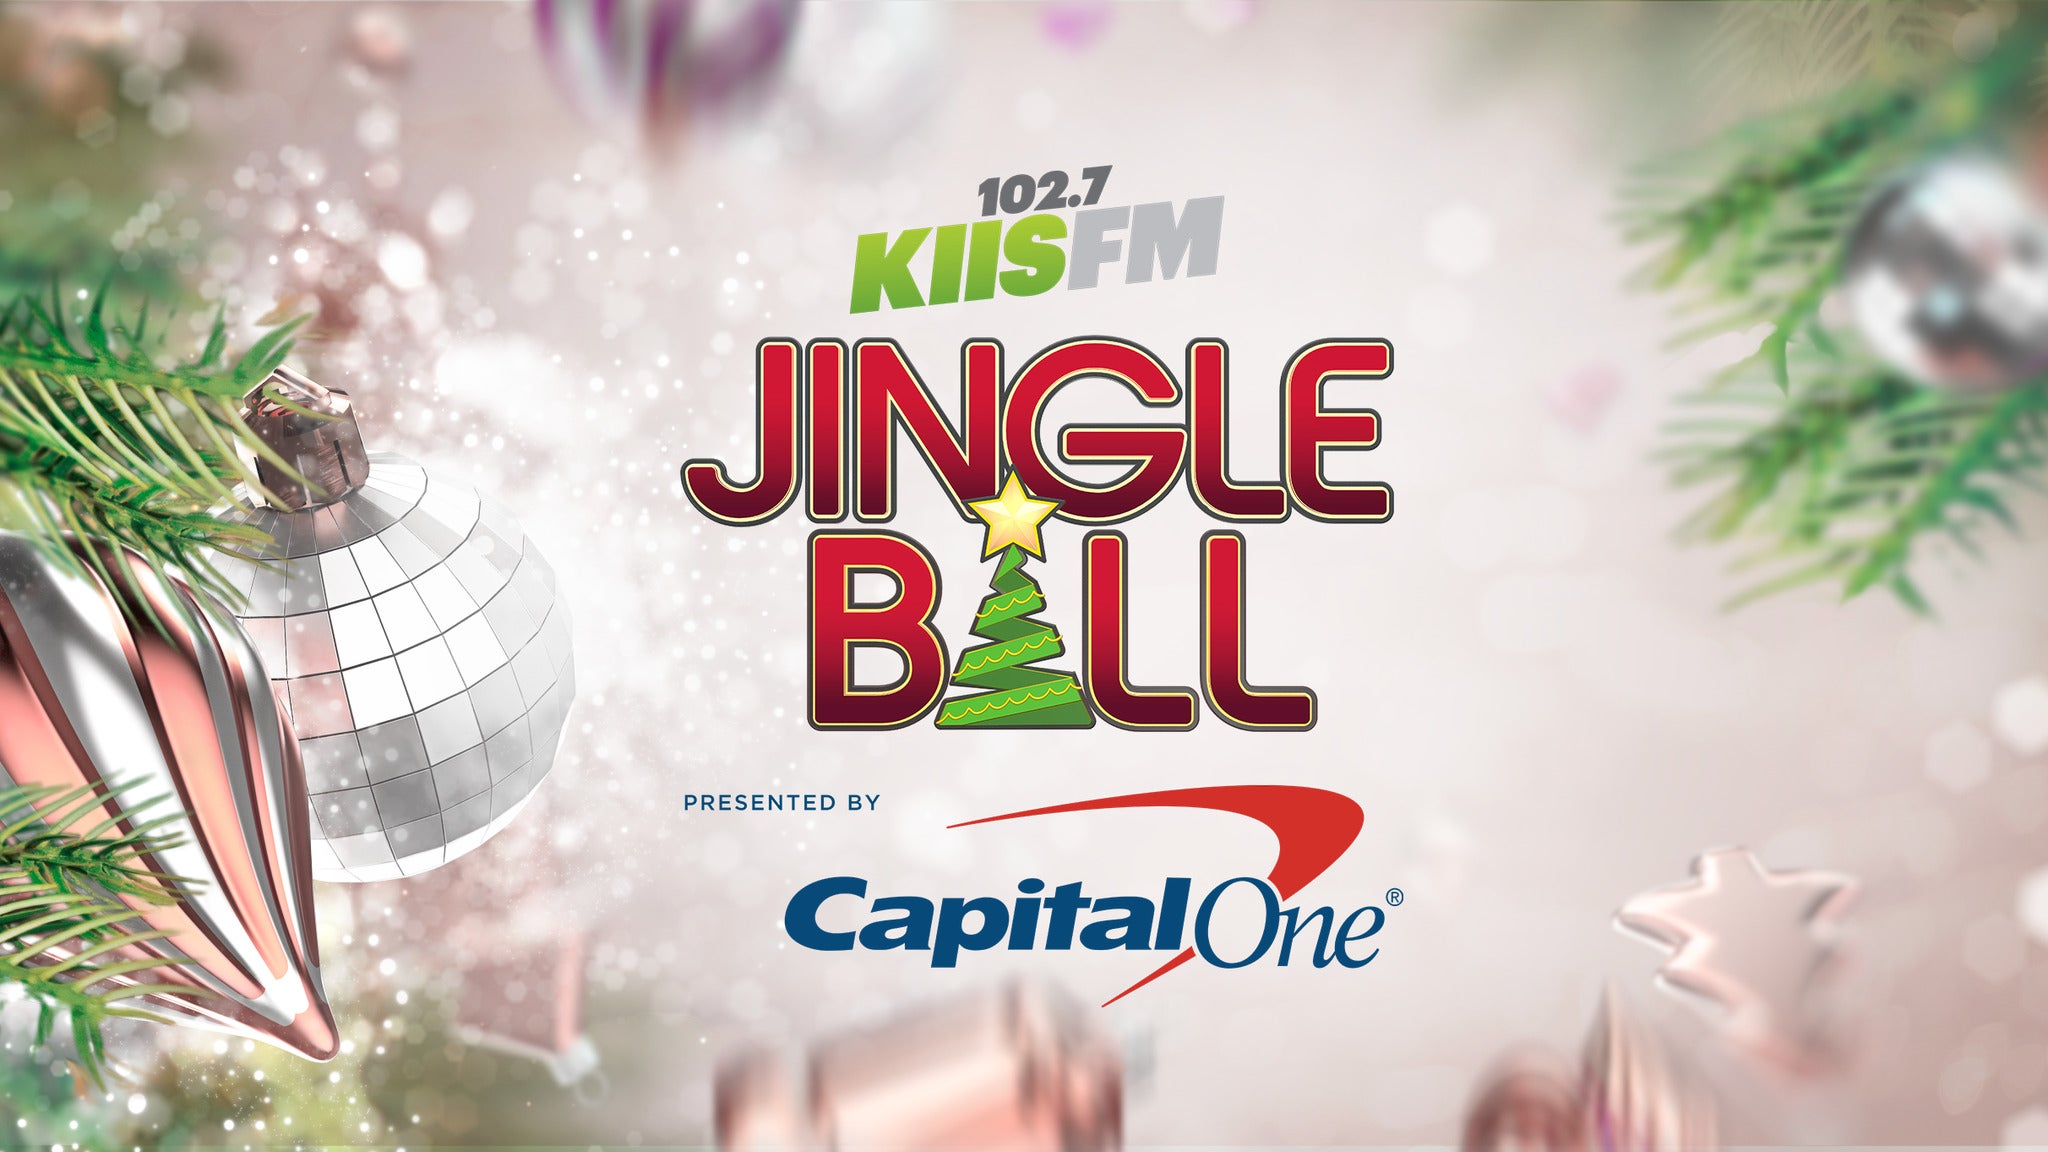 KIIS FM's Jingle Ball Presented by Capital One at The Forum